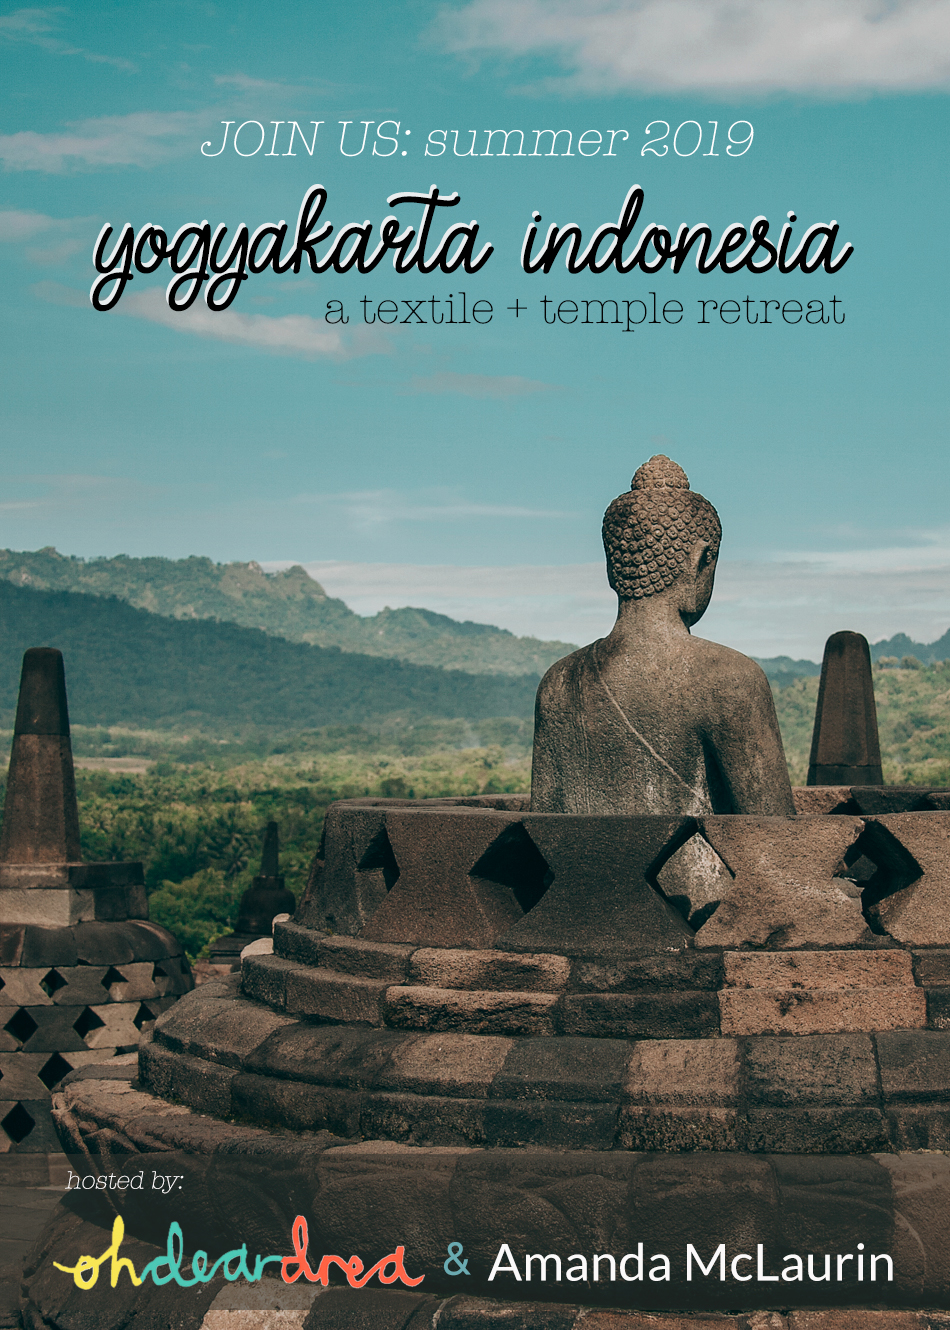 Want To Travel With Us?! Summer 2019 Indonesia Retreat!